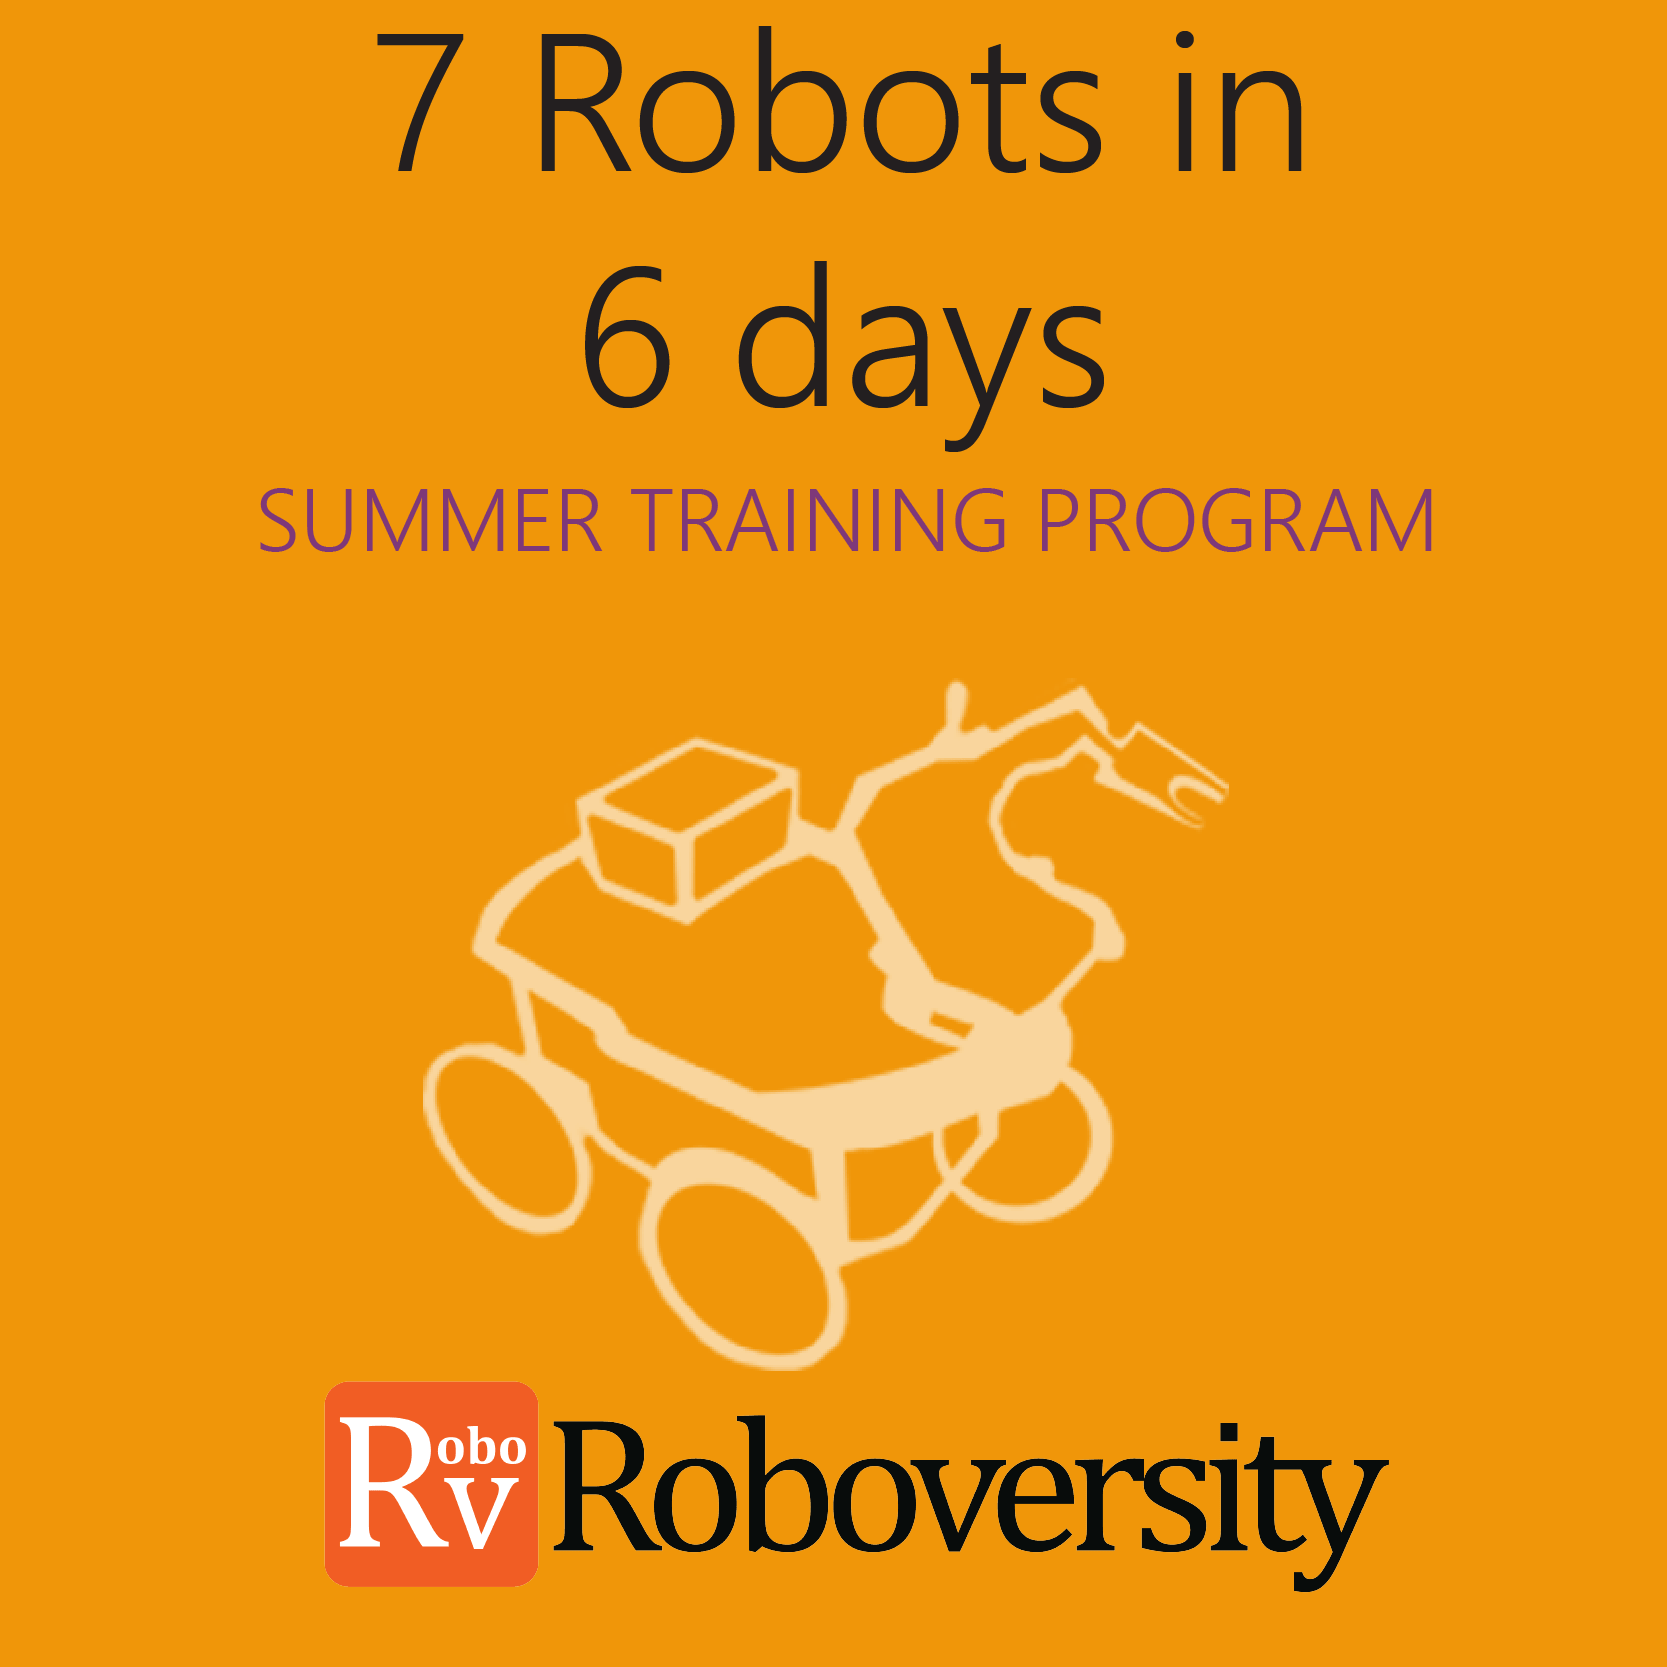 Summer Training Program in Robotics - 7 Robots in 6 Days  at Skyfi Labs Center,Jejurkar Classes, Dadar